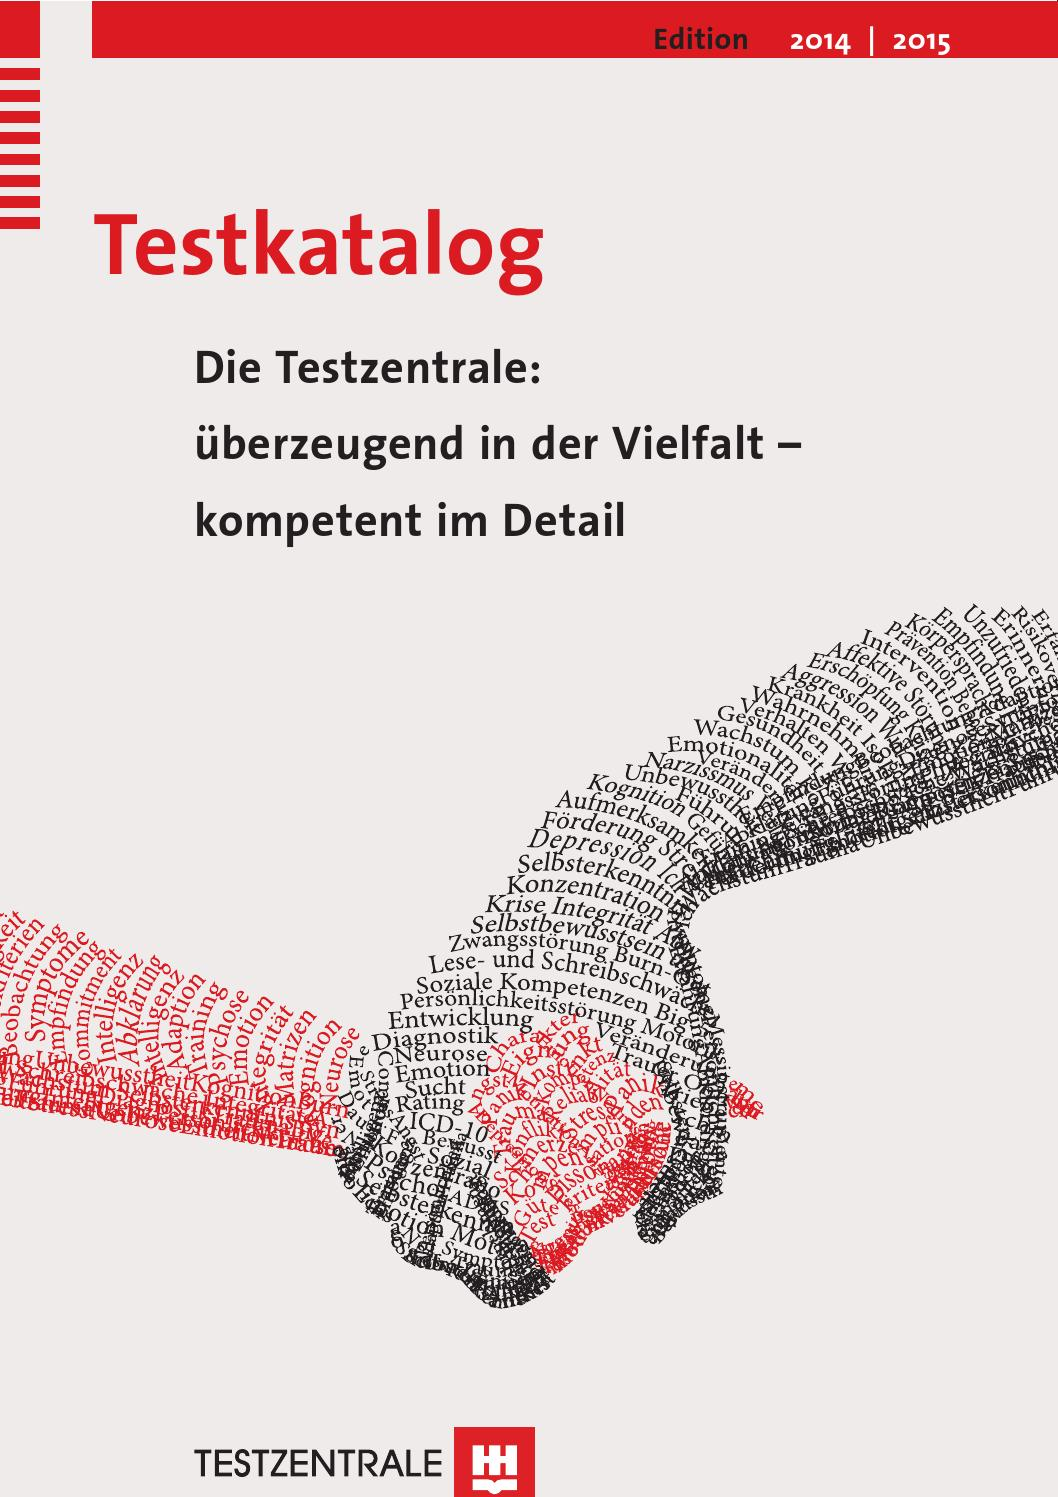 Testkatalog 2014/2015 by Hogrefe - issuu